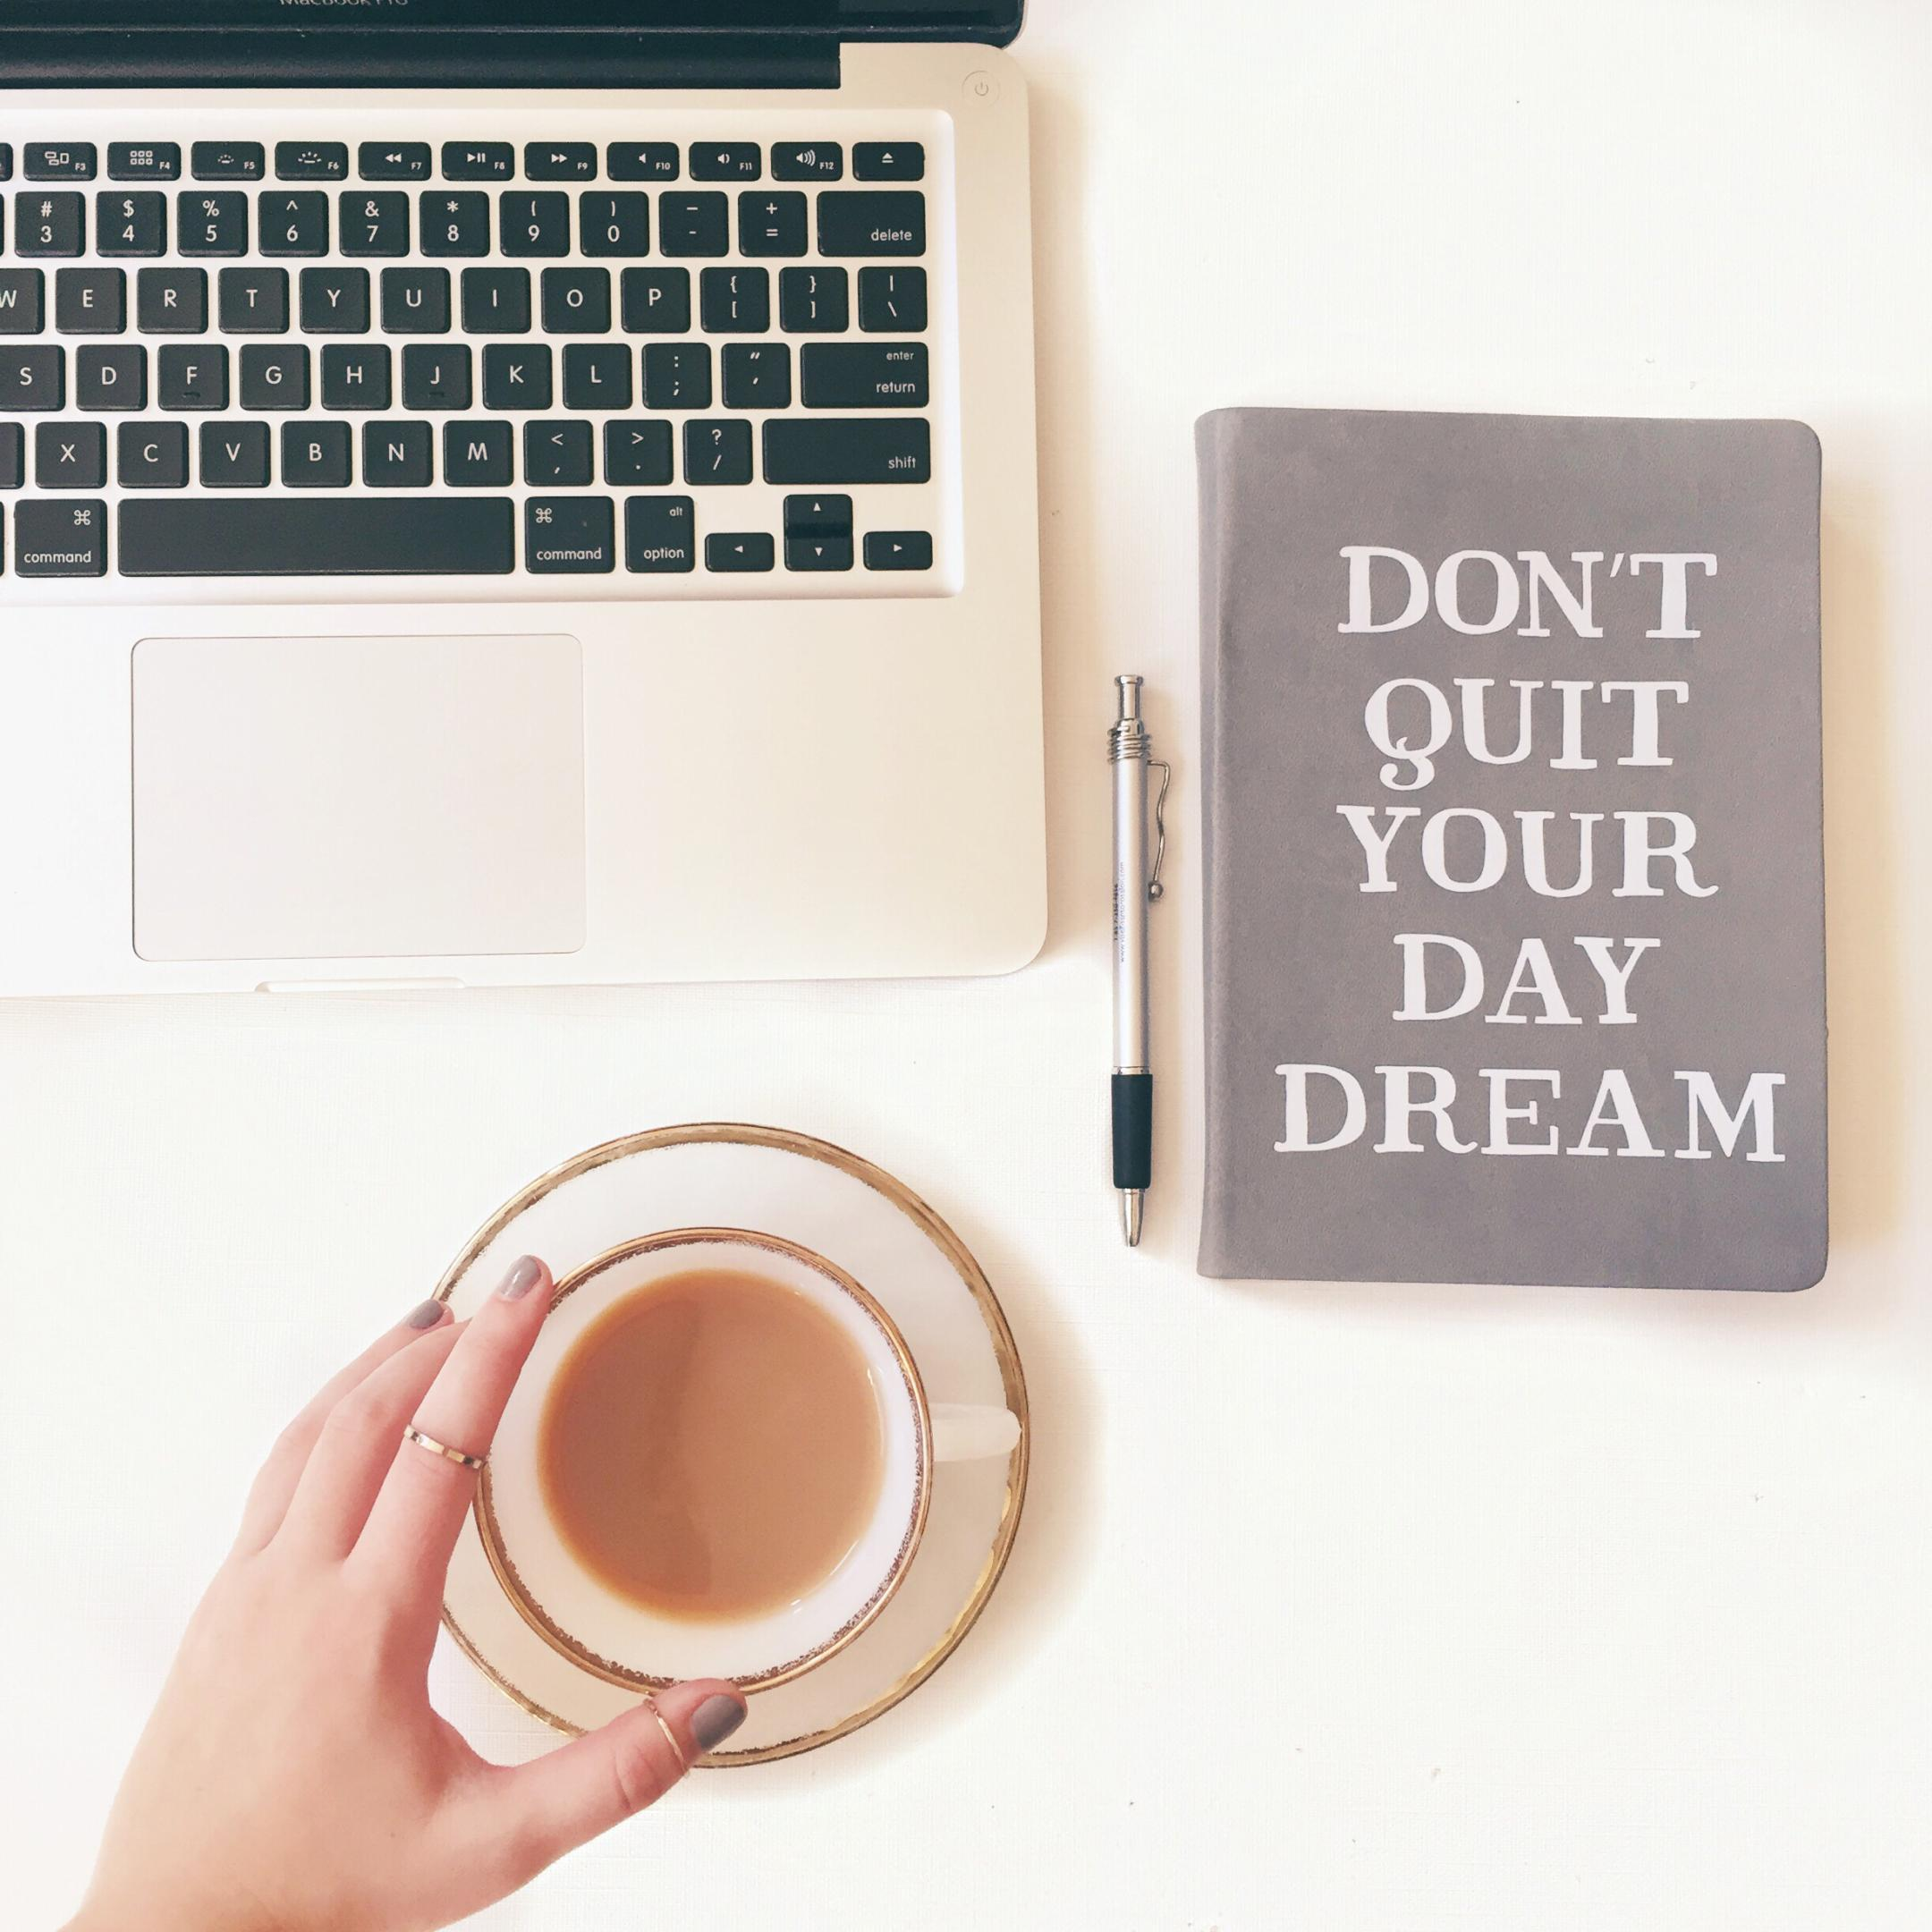 Impact business - Don't quit your day dream